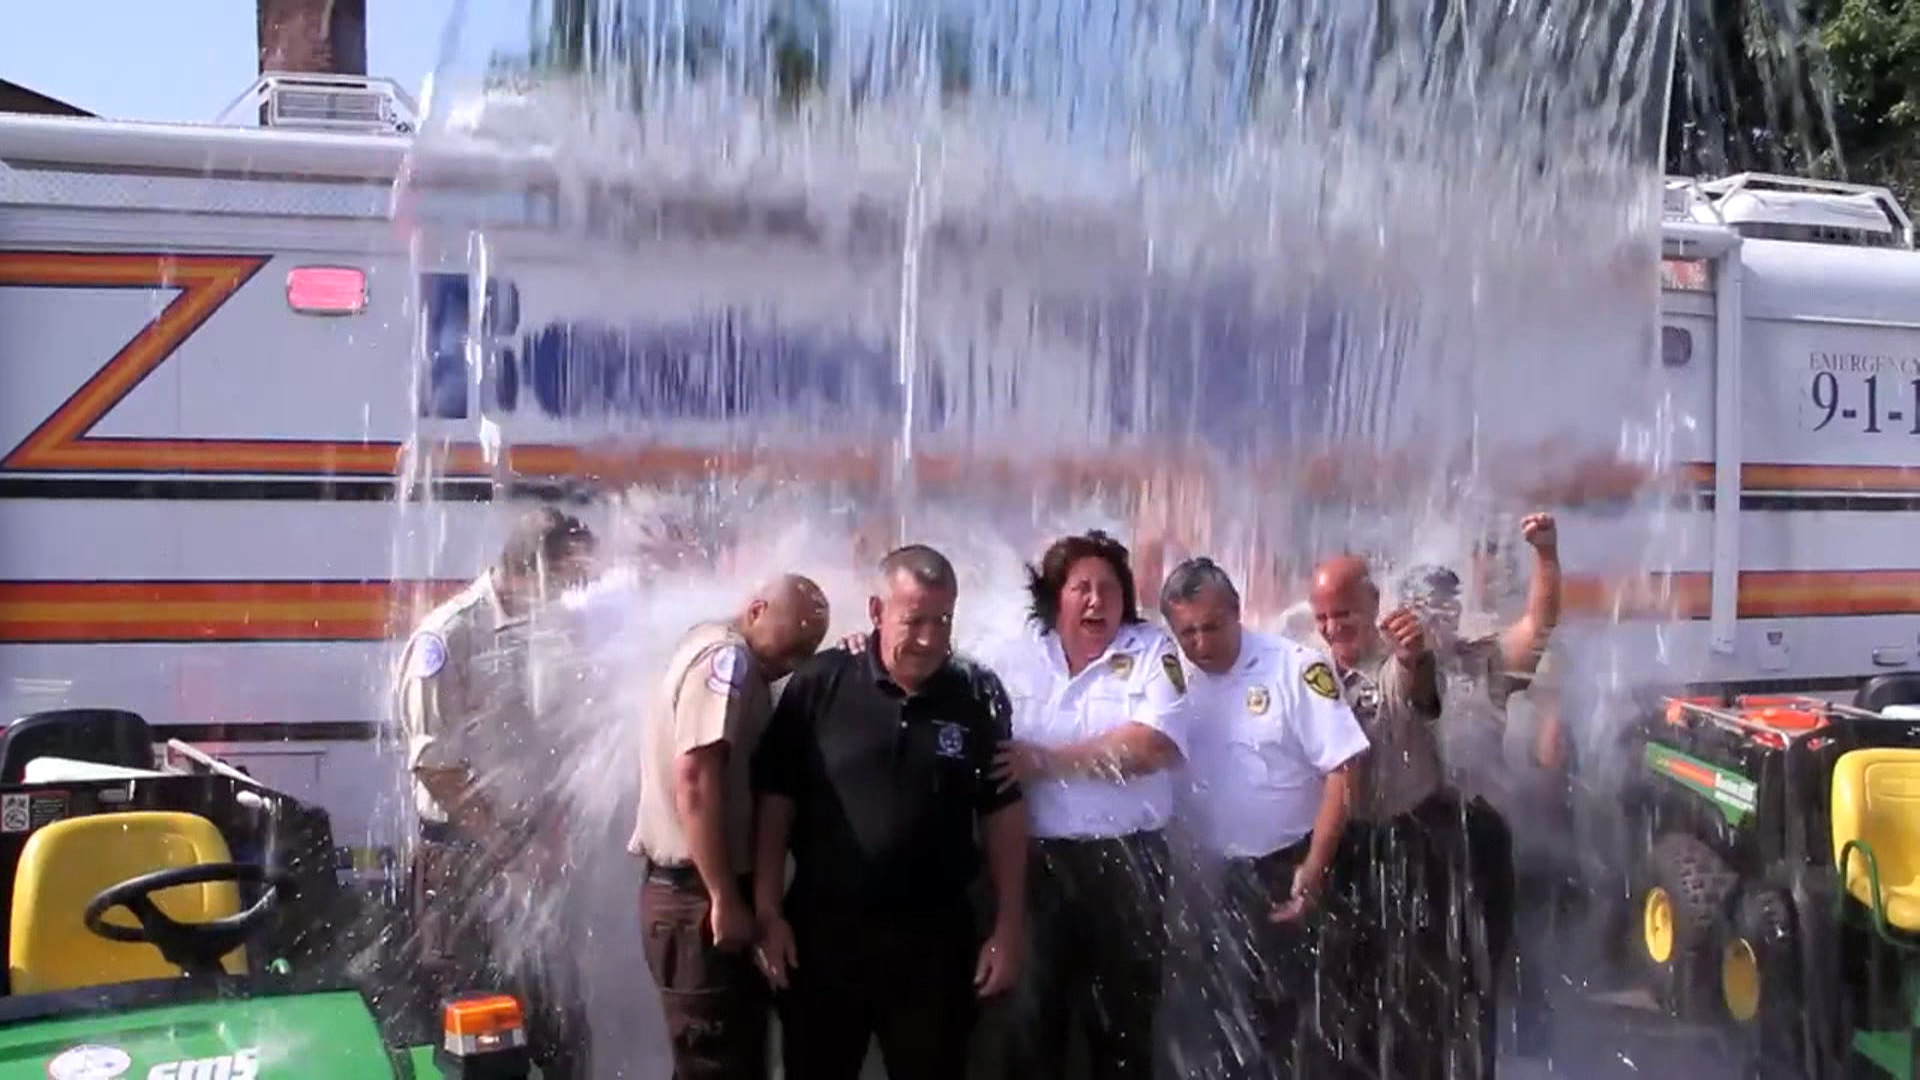 Striking Out ALS: Ice Bucket Challenge Brings Flood of Donations